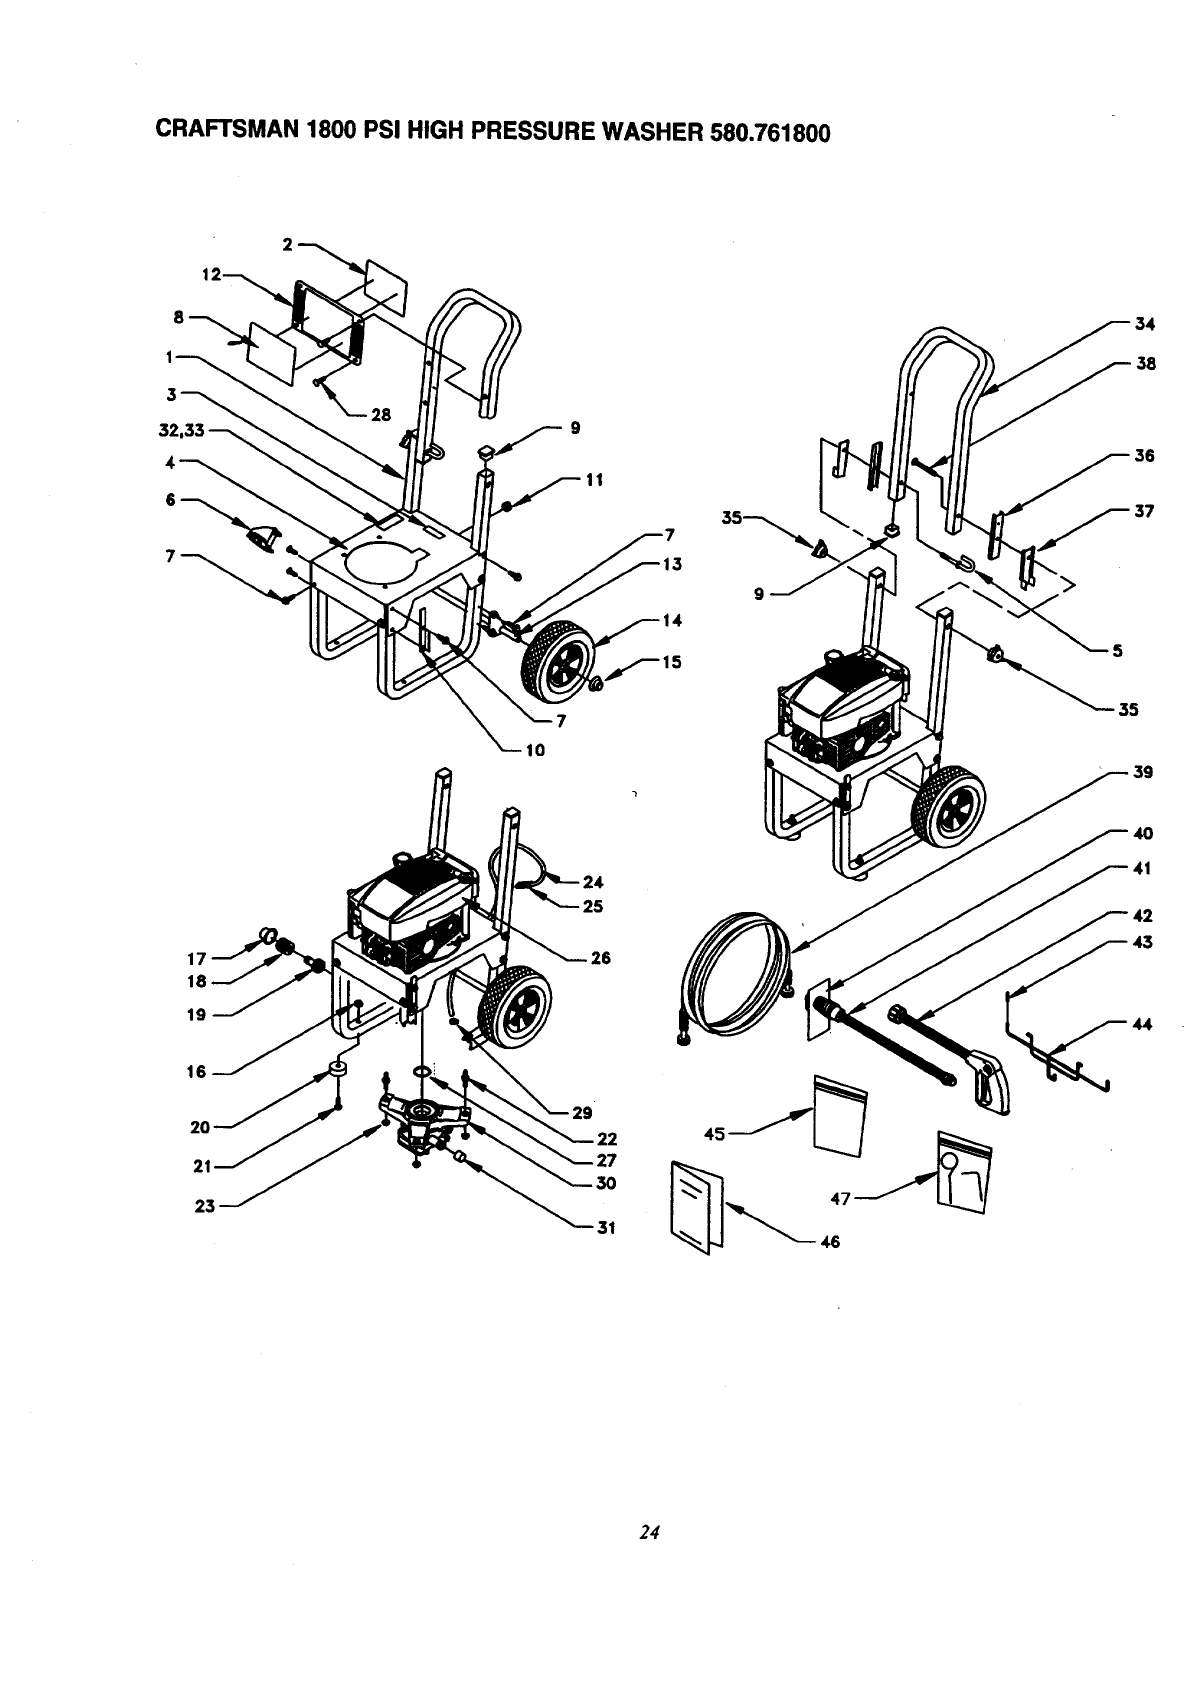 Page 24 of Craftsman Pressure Washer 580.7618 User Guide